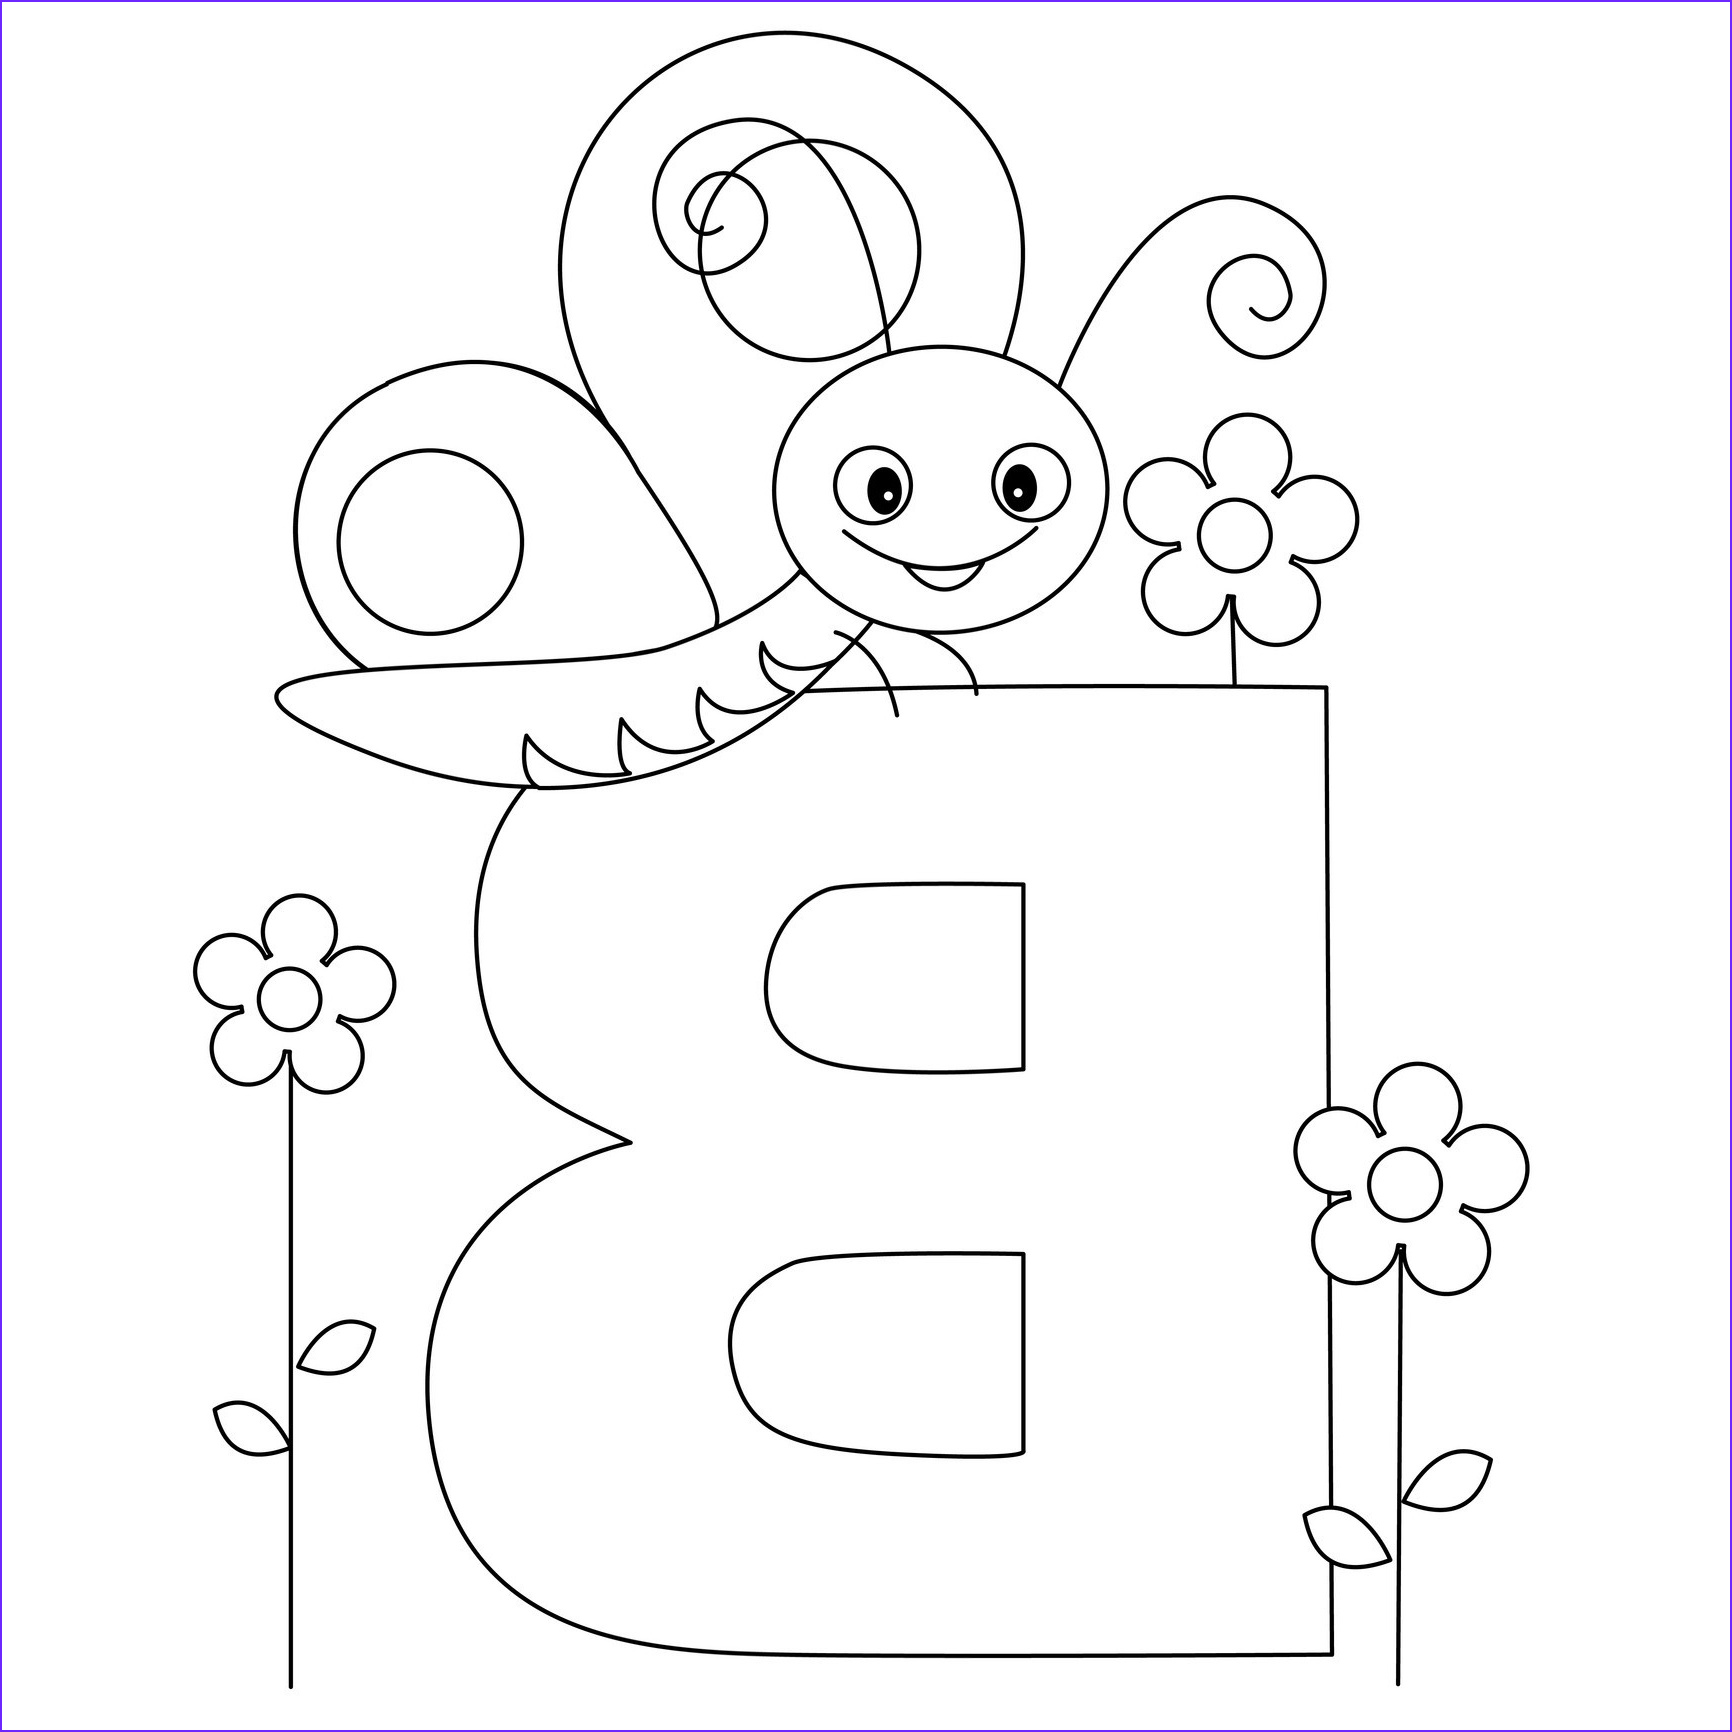 Free Printable Alphabet Coloring Pages Beautiful Image Free Printable Alphabet Coloring Pages for Kids Best